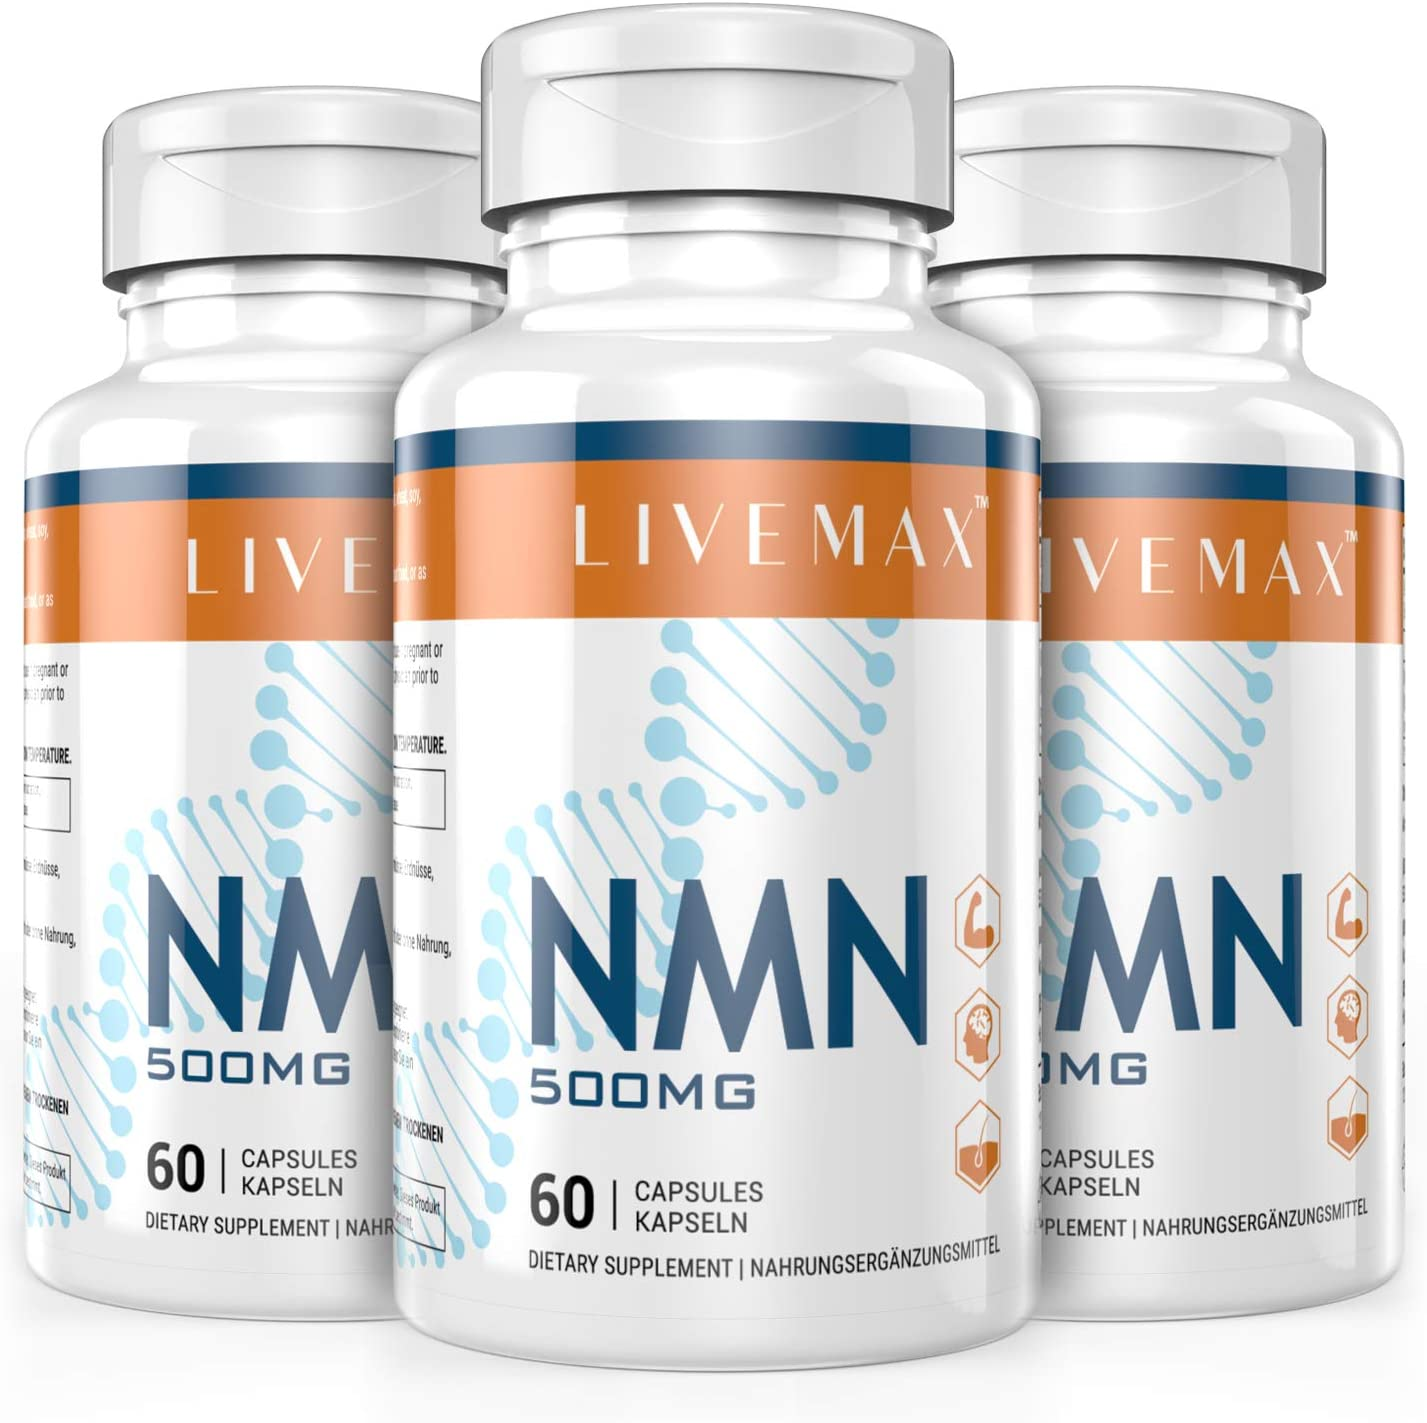 NMN Supplement Popular popular 500mg- Enhance Energy Concentration Impro Boost Fees free!!